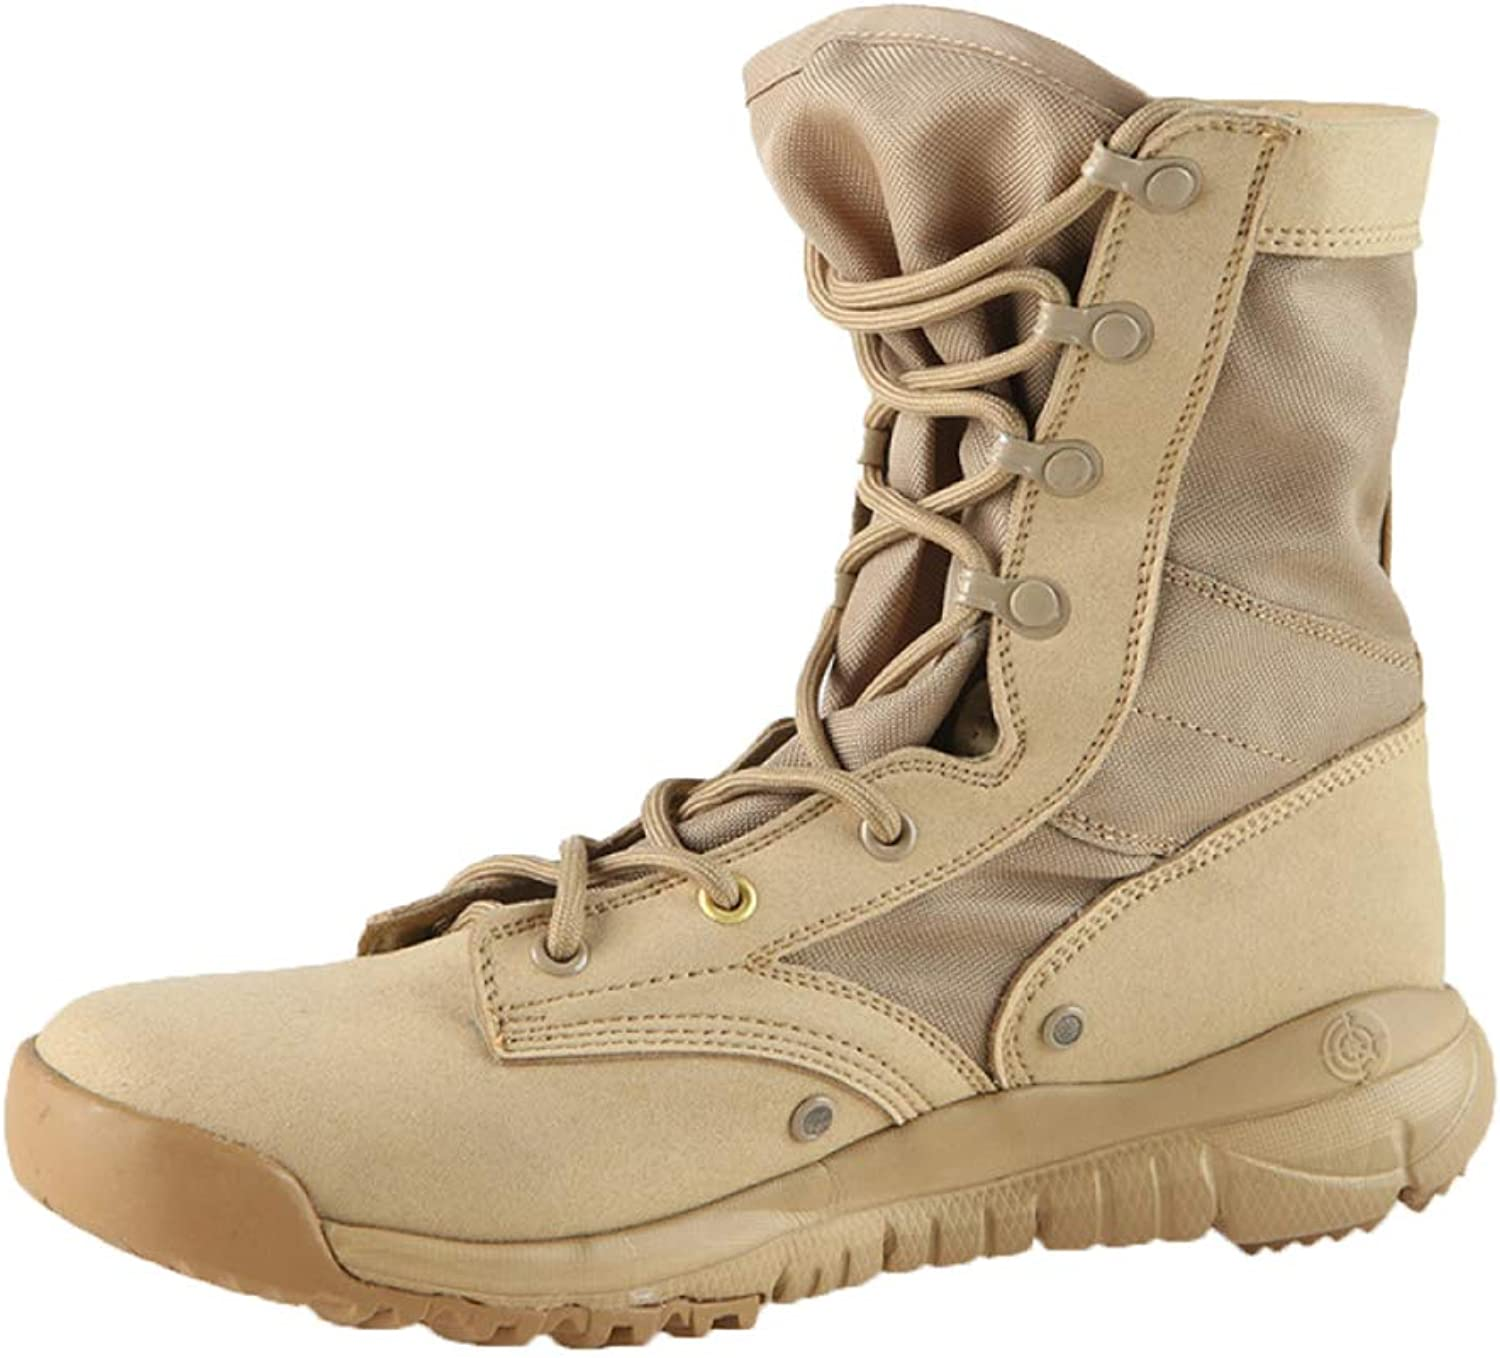 Snfgoij Tactical Military Boots Men Sand Hiking Breathable Lightweight High Gang Desert Boots in Summer Combat Boots